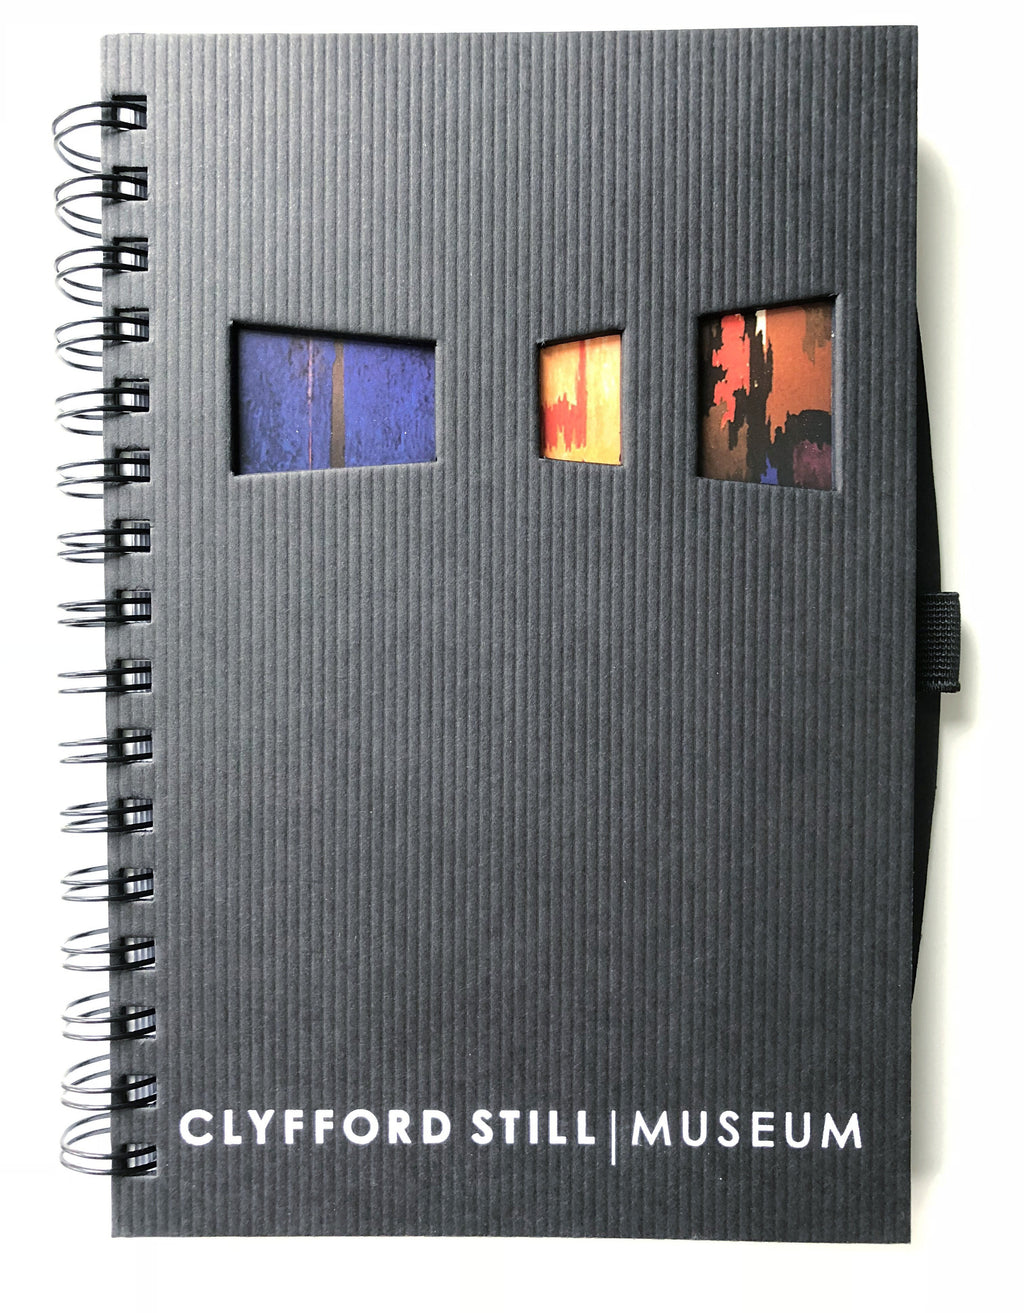 Clyfford Still Museum Sketchbook Die Cut